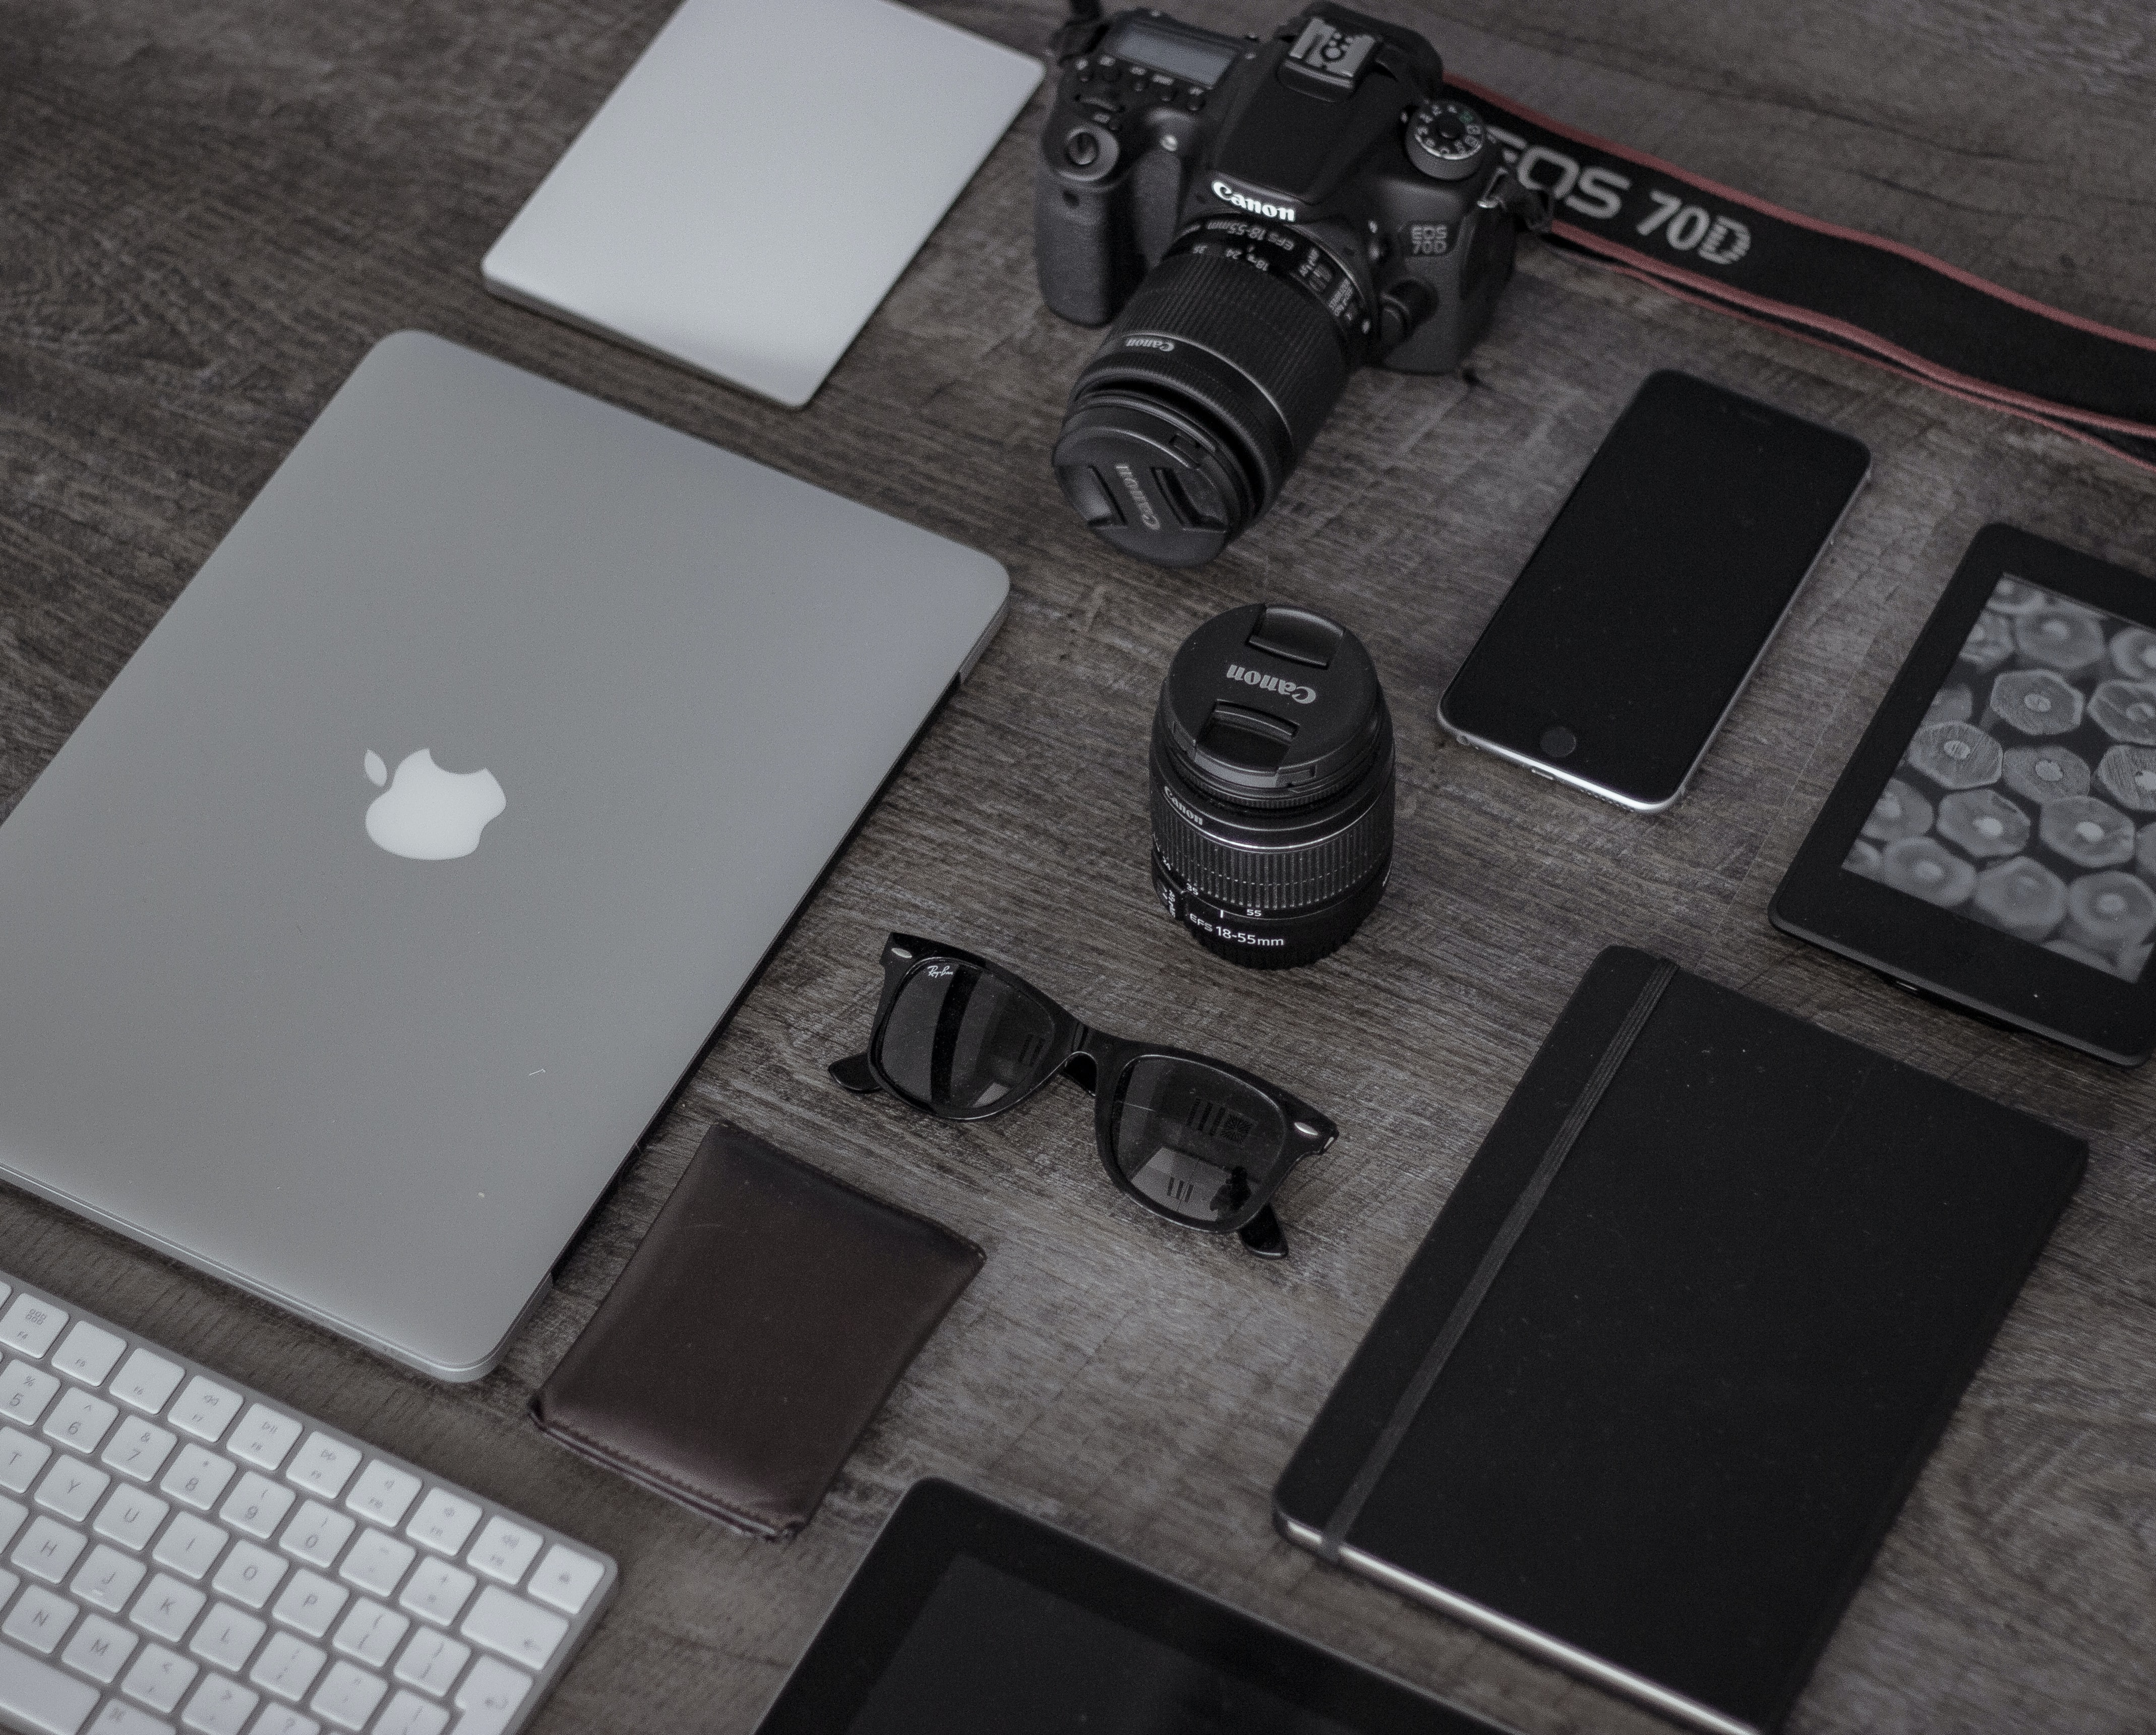 photo of a few electronics on a surface: a macbook, sunglasses, an SLR camera, an iphone, a kindle, and a notebook